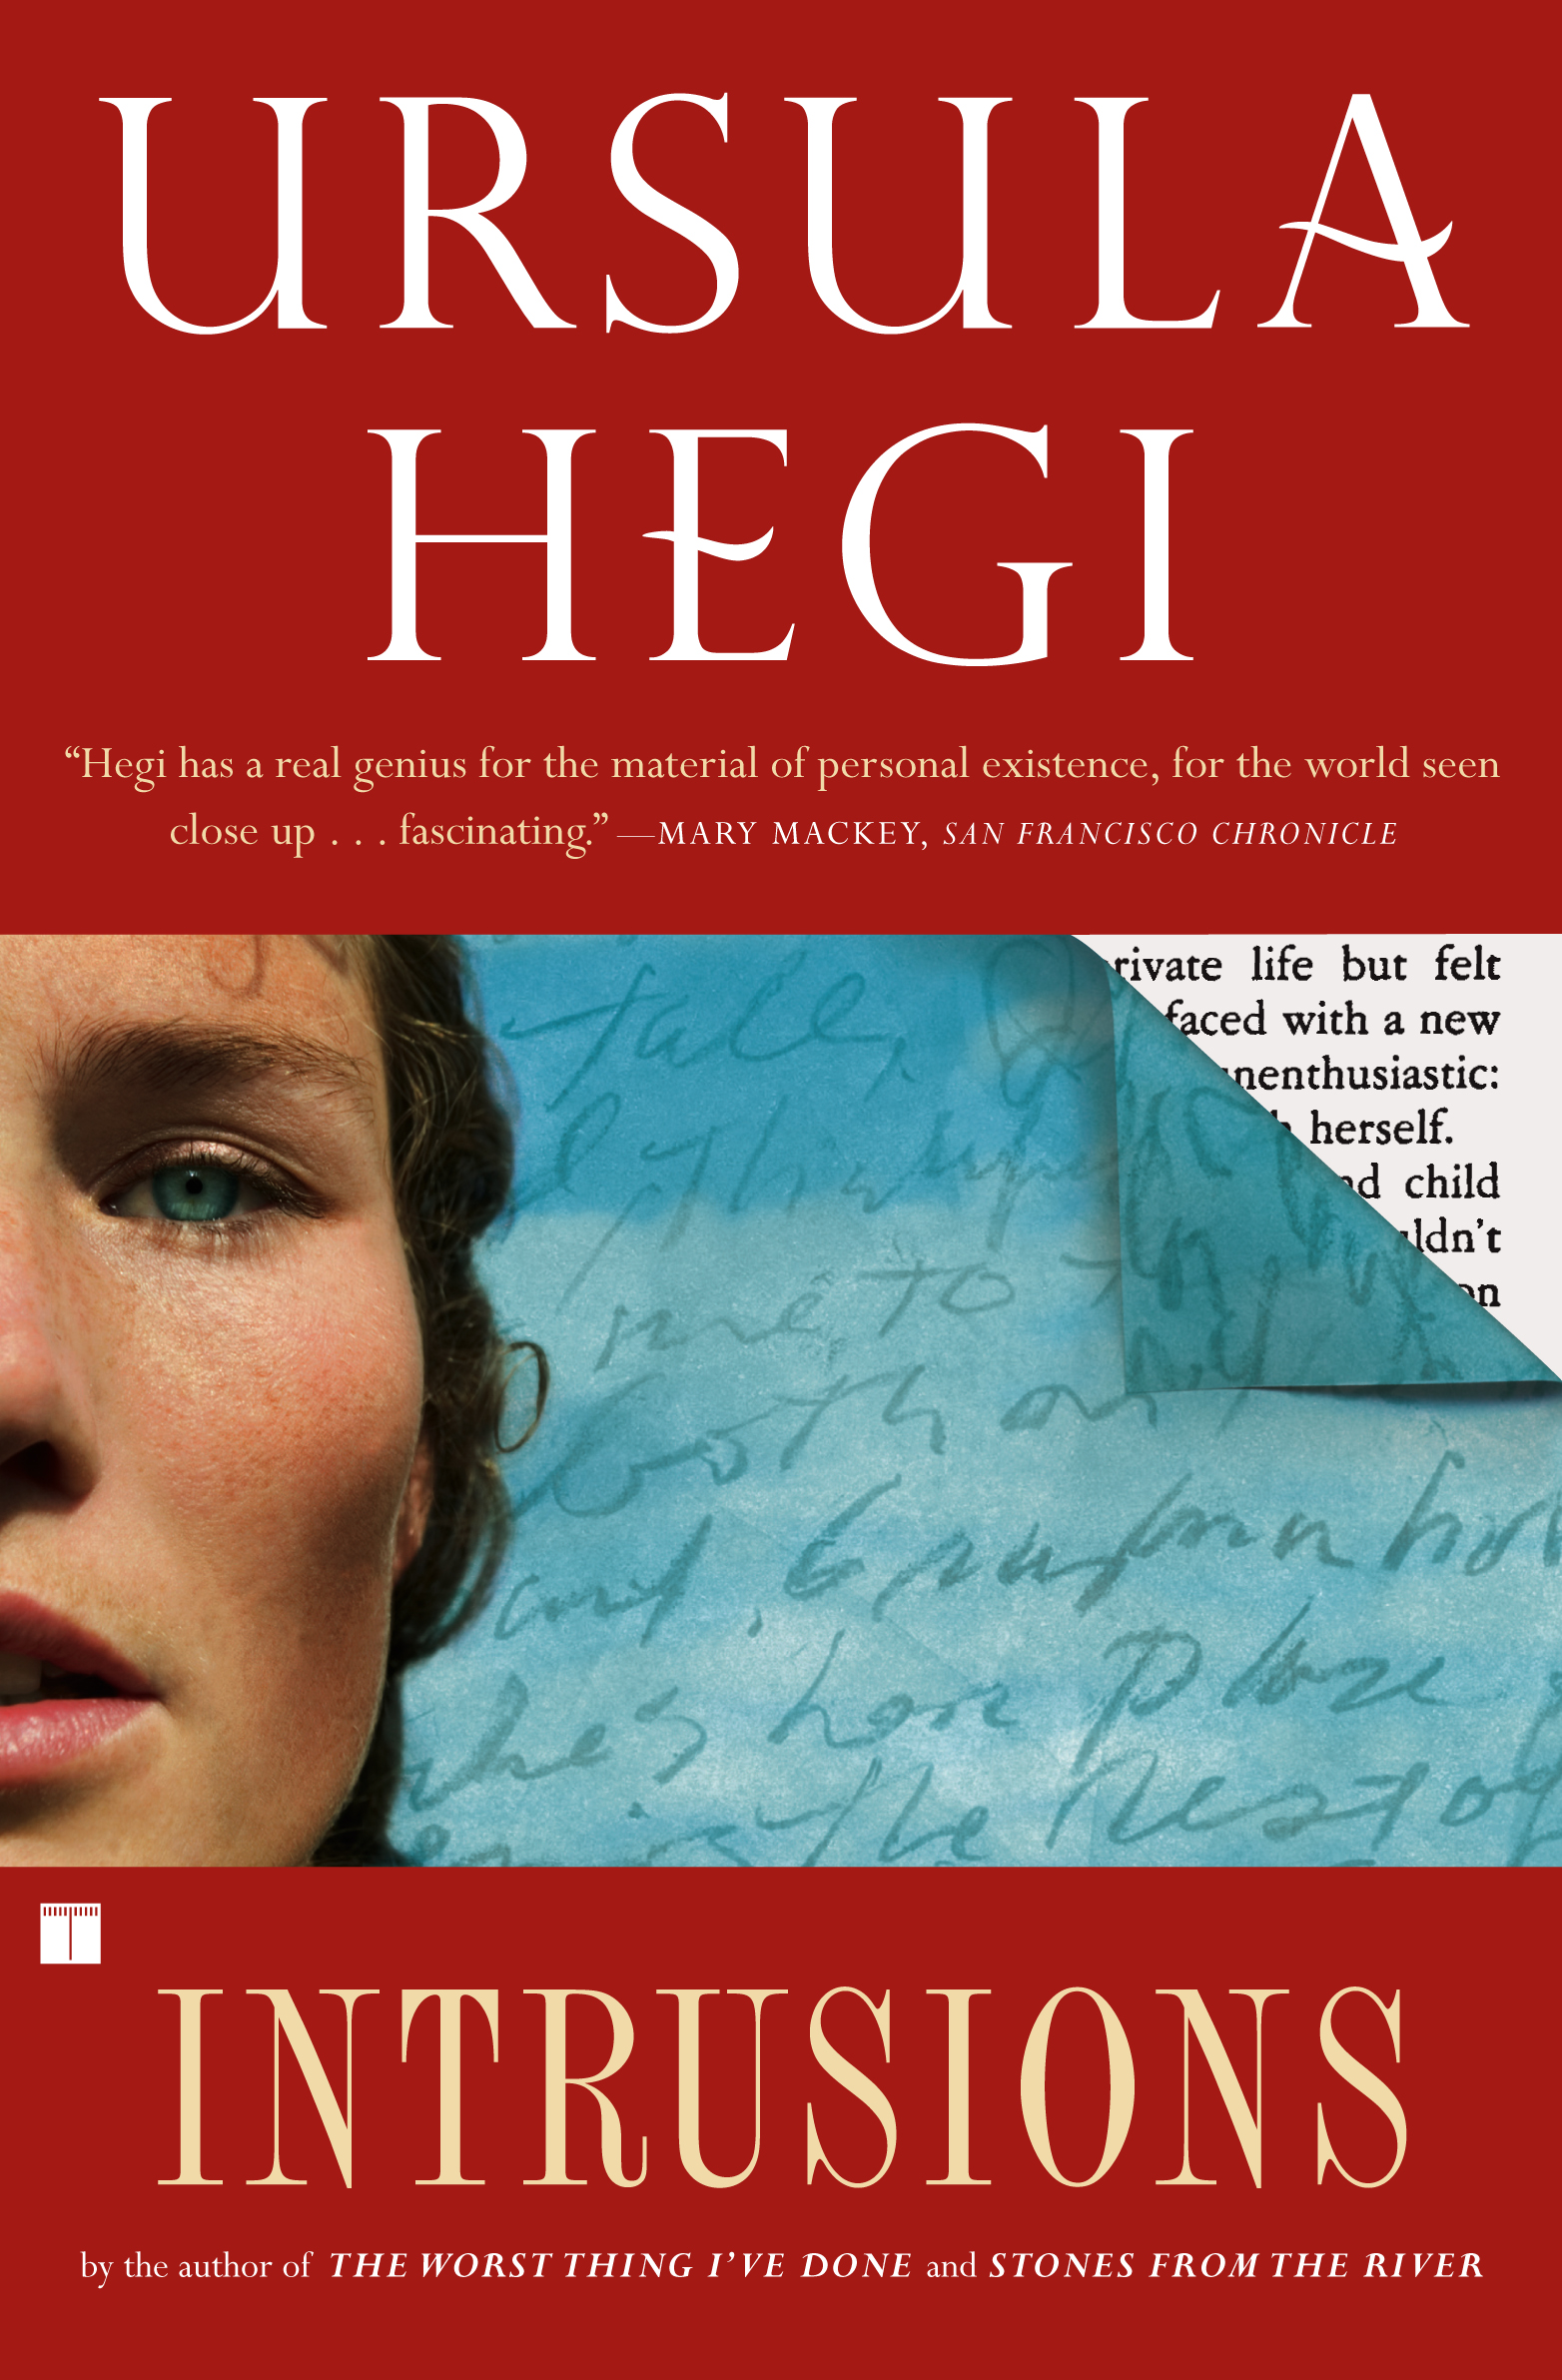 Books Like Stones from the River by Ursula Hegi | Suggested Reading